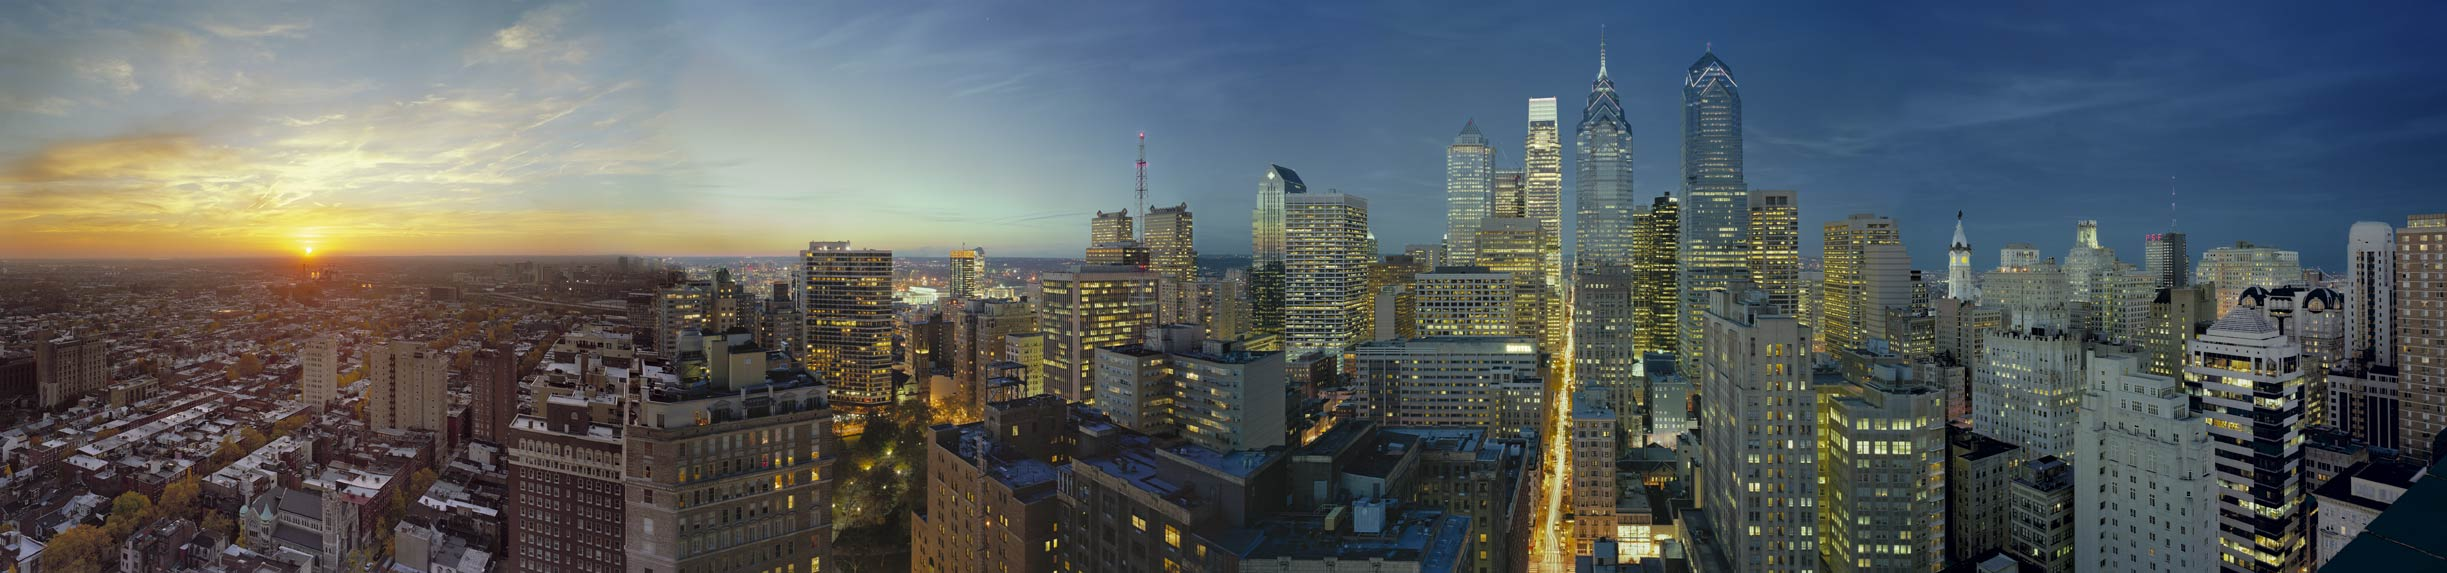 Philadelphia skyline by Don Pearse Photographers